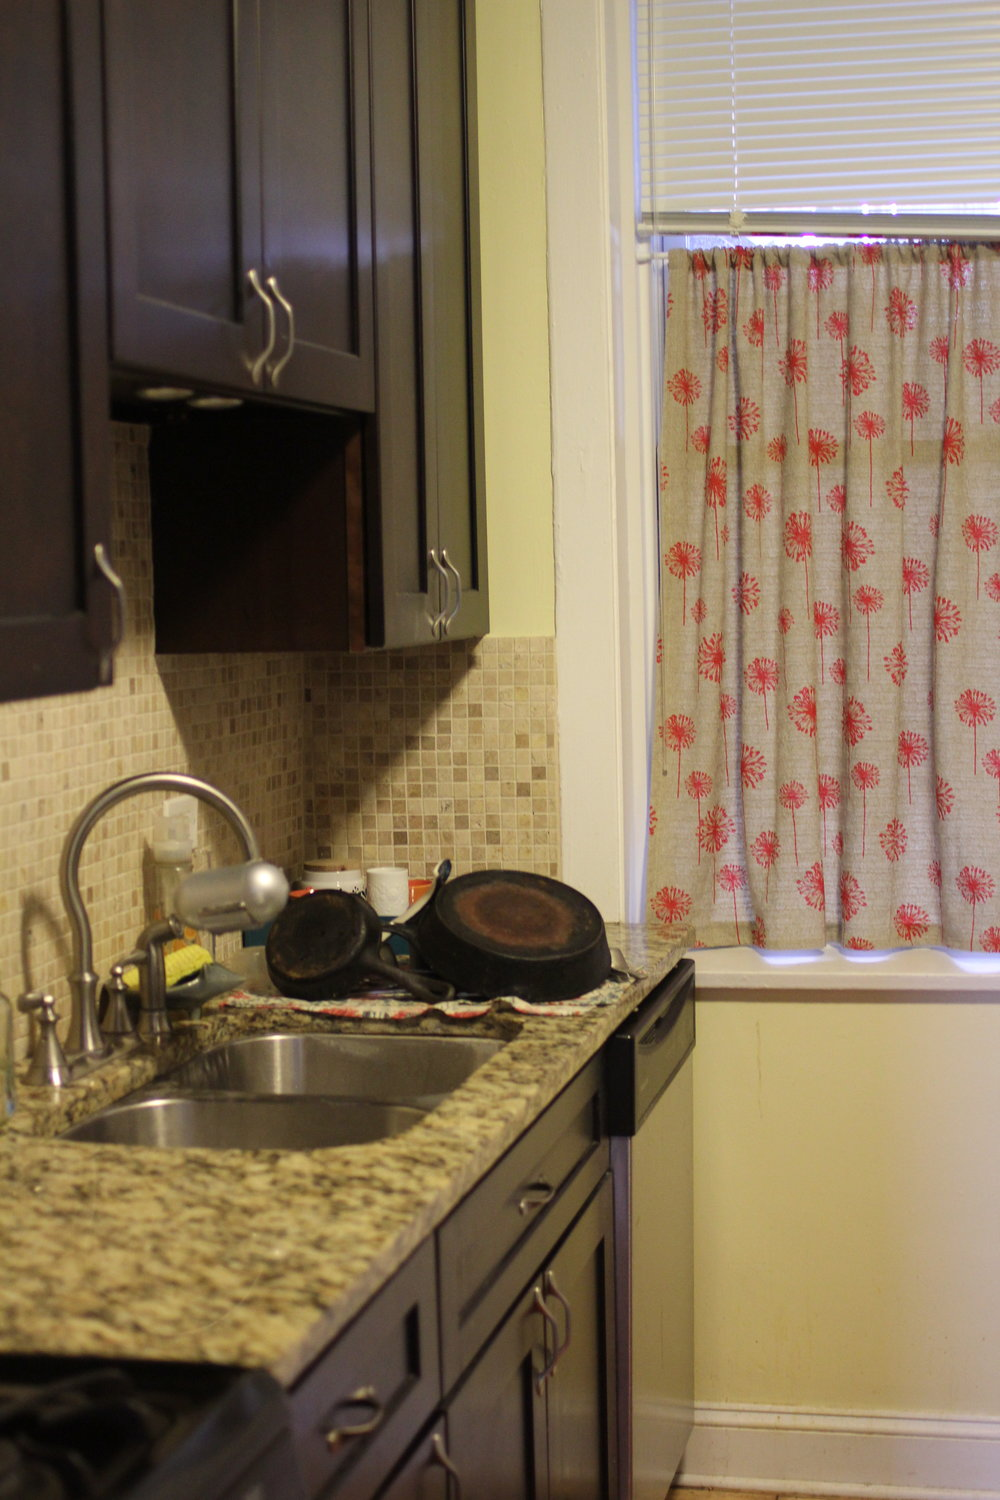 Granite Countertops and pots and pans in kitchen